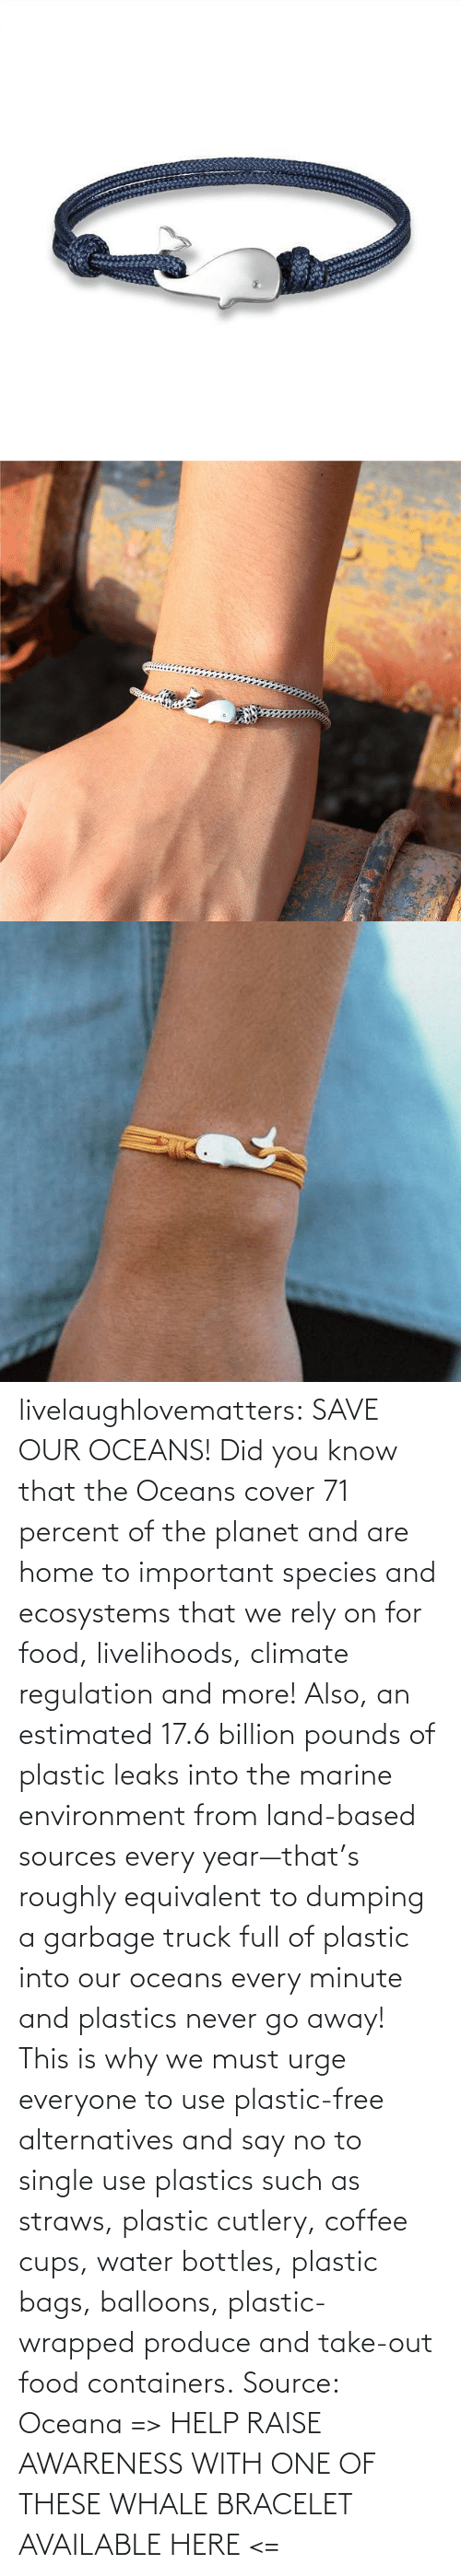 Here: livelaughlovematters:  SAVE OUR OCEANS!  Did you know that the Oceans cover 71 percent of the planet and are home to important species and ecosystems that we rely on for food, livelihoods, climate regulation and more! Also, an estimated 17.6 billion pounds of plastic leaks into the marine environment from land-based sources every year—that's roughly equivalent to dumping a garbage truck full of plastic into our oceans every minute and plastics never go away! This is why we must urge everyone to use plastic-free alternatives and say no to single use plastics such as straws, plastic cutlery, coffee cups, water bottles, plastic bags, balloons, plastic-wrapped produce and take-out food containers. Source: Oceana => HELP RAISE AWARENESS WITH ONE OF THESE WHALE BRACELET AVAILABLE HERE <=